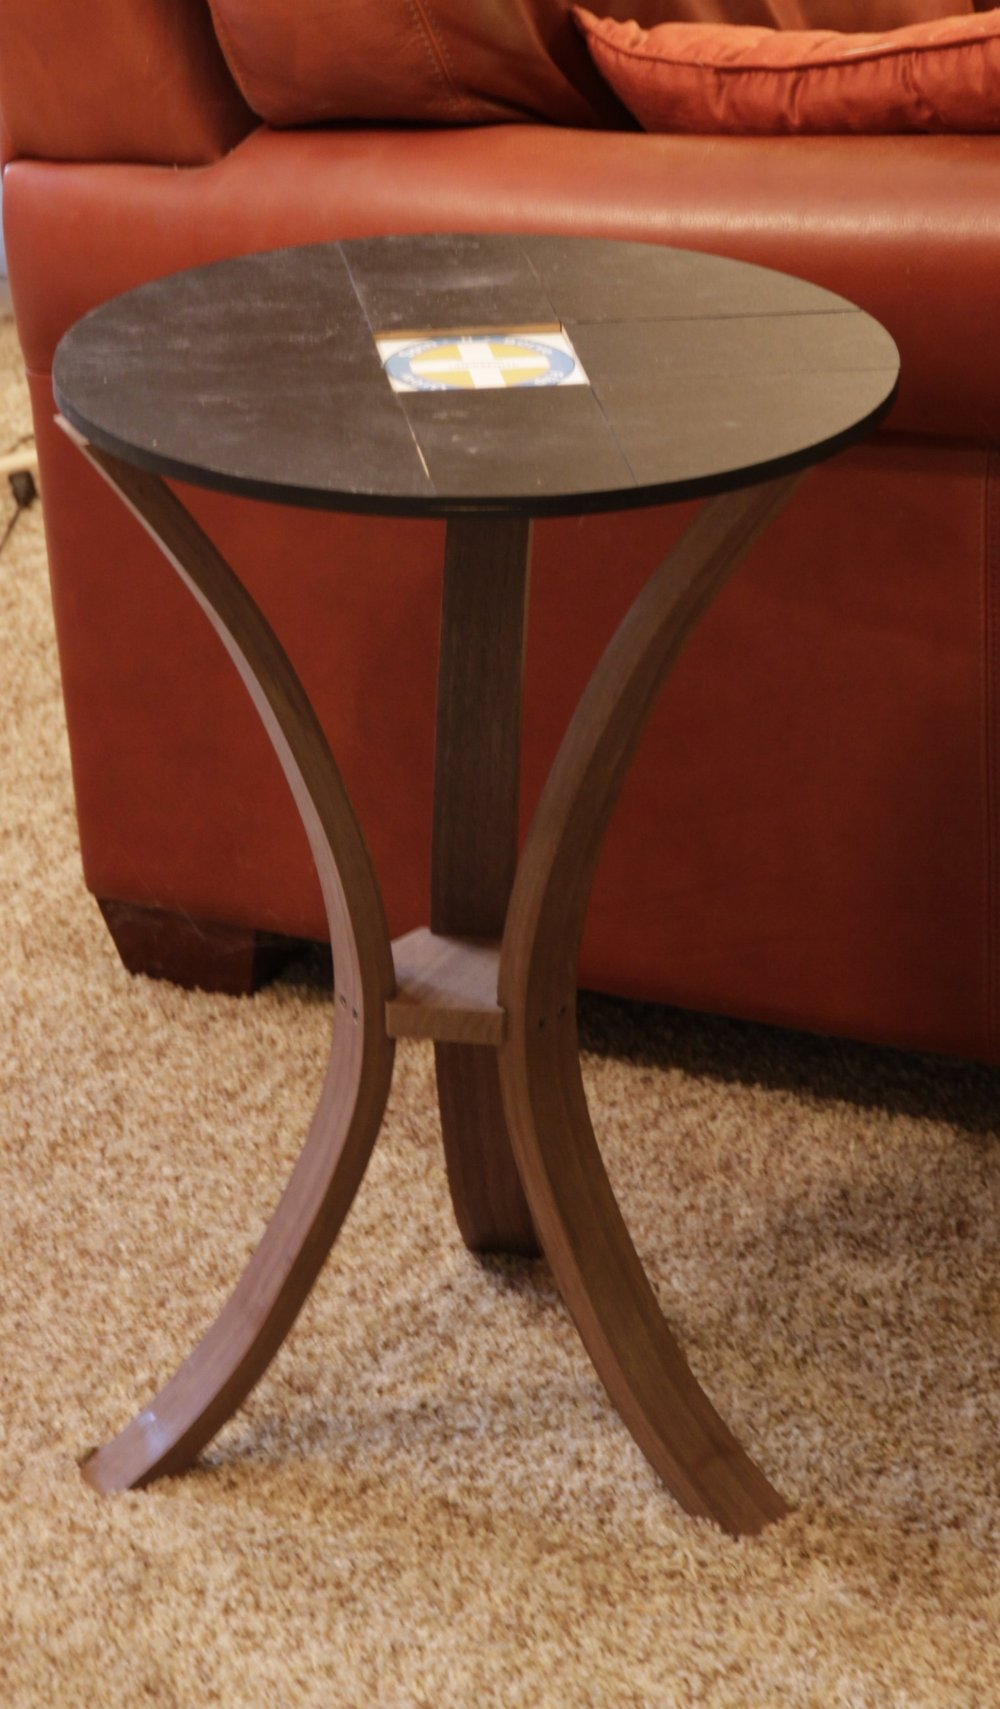 Start by placing the base on the table legs. - (Works with both the 18 and 24